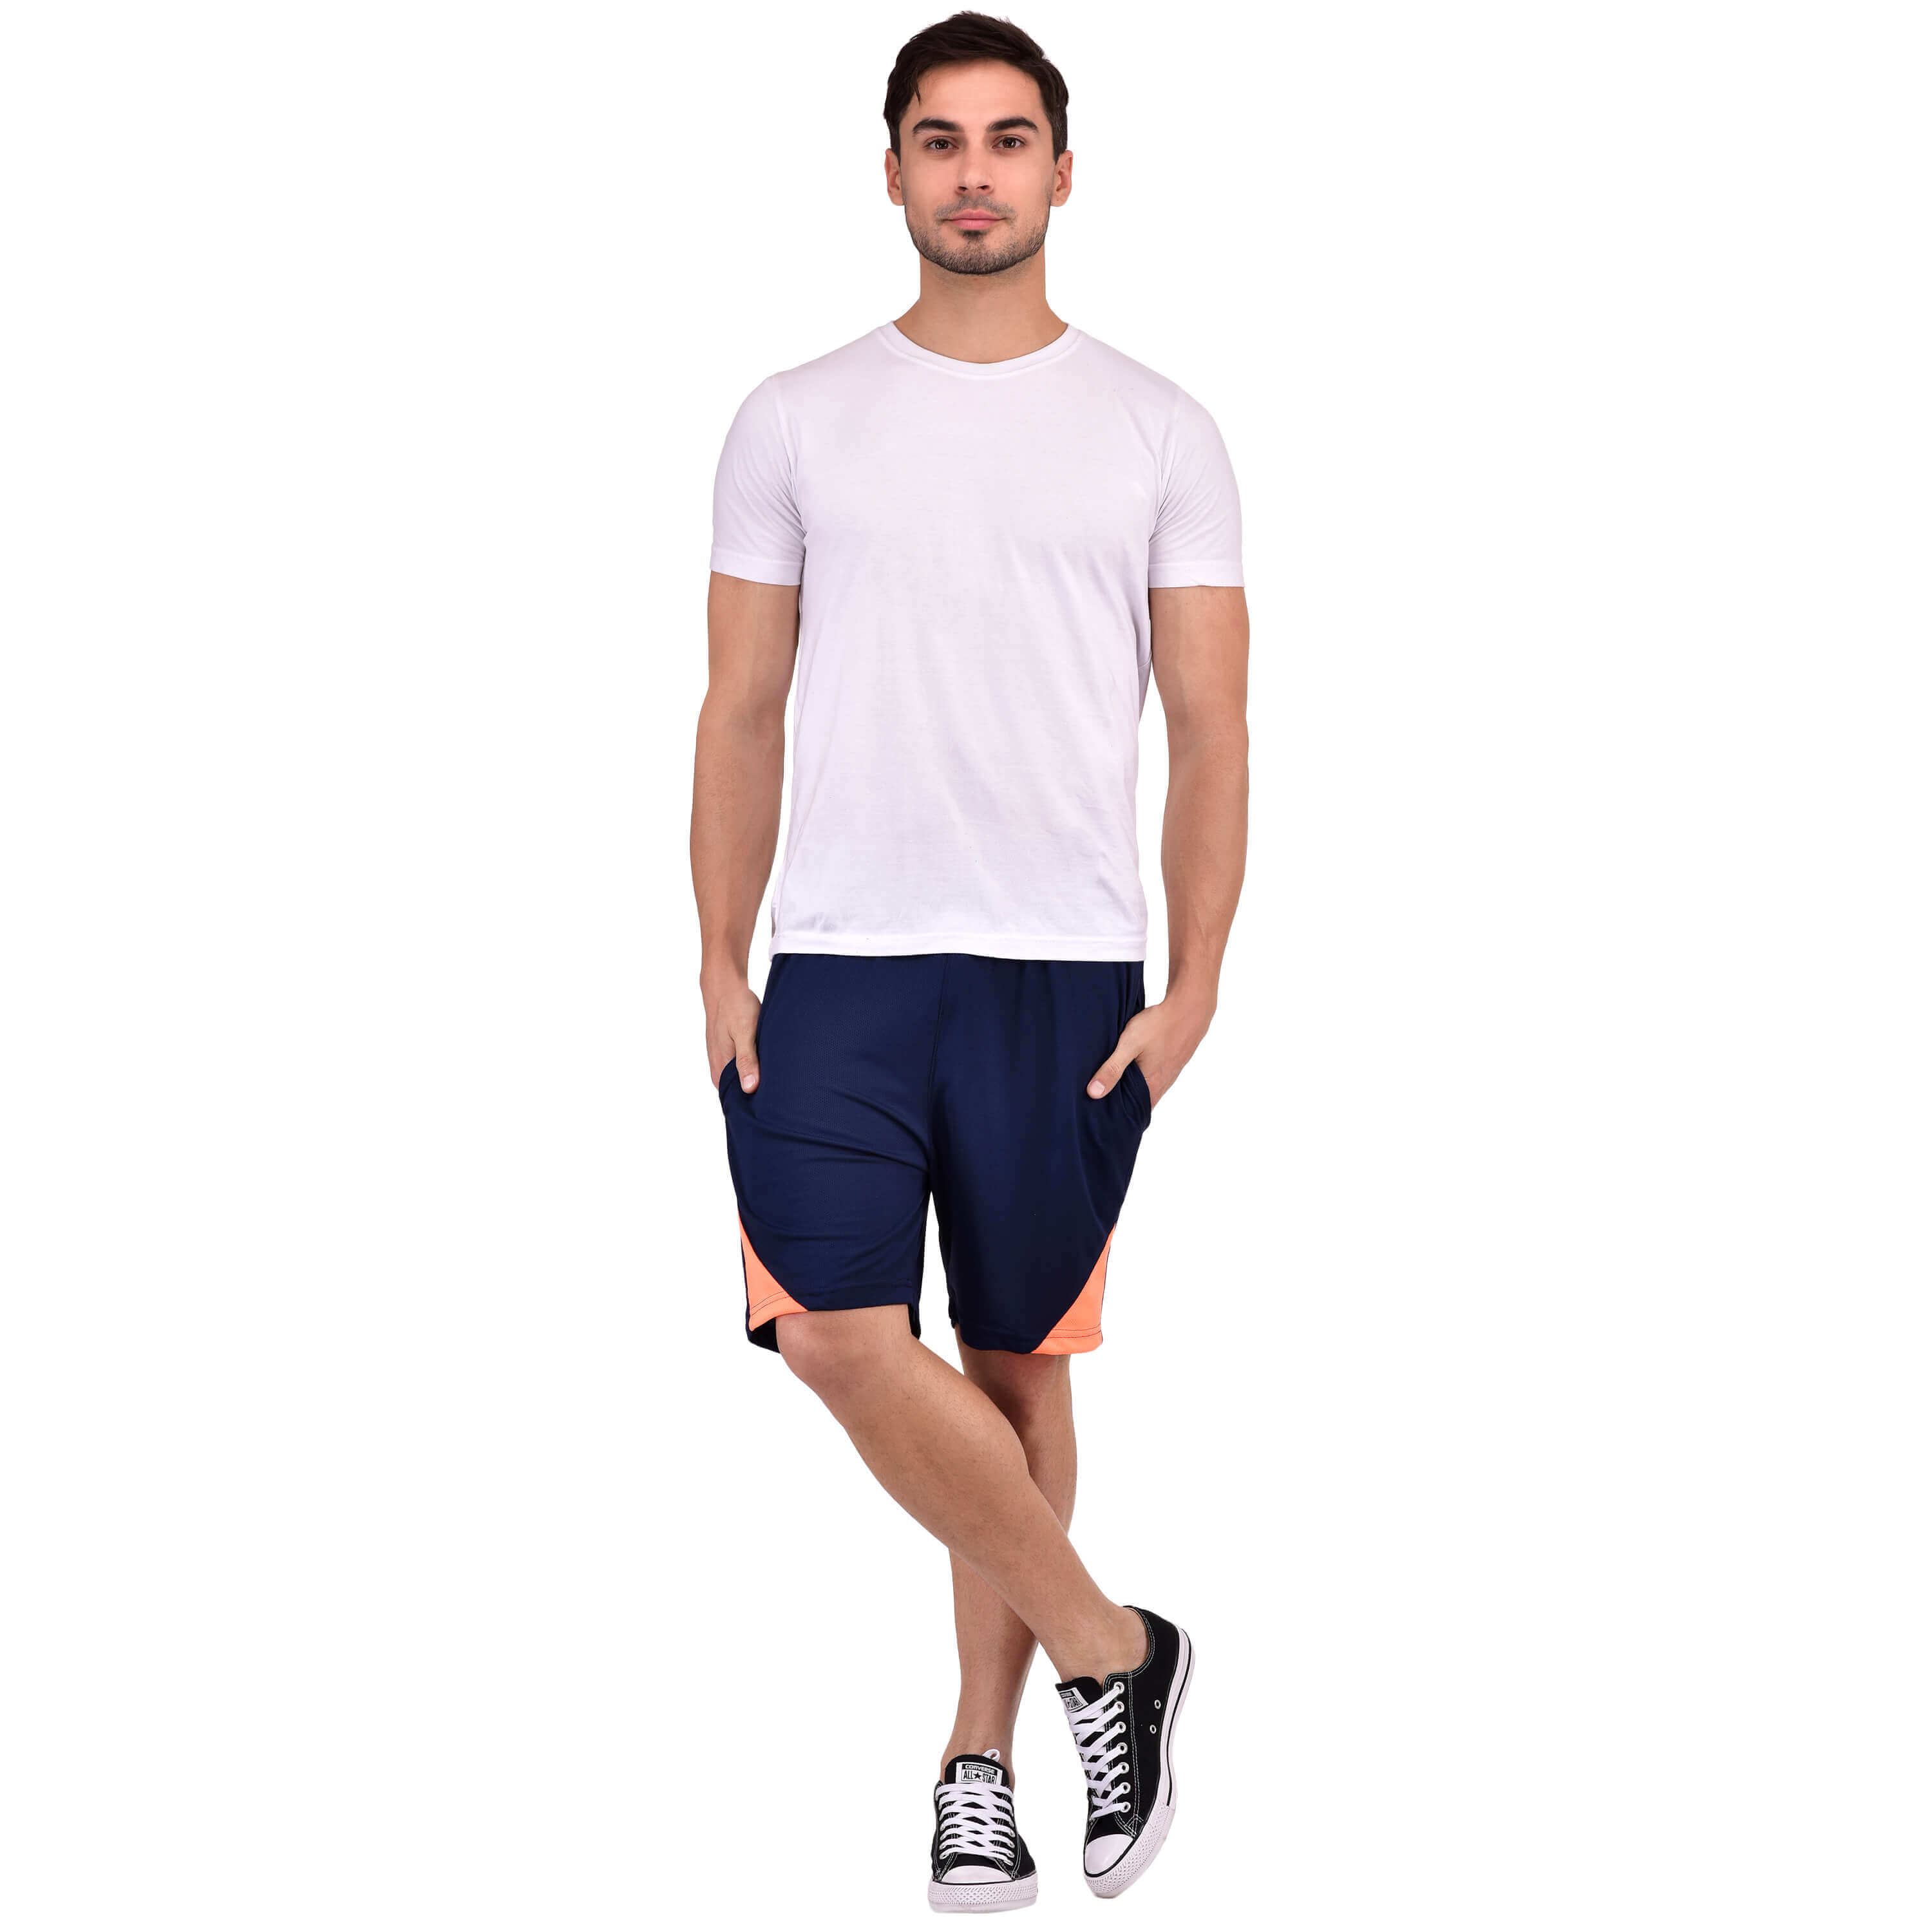 Cotton T Shirts Manufacturers in Thailand